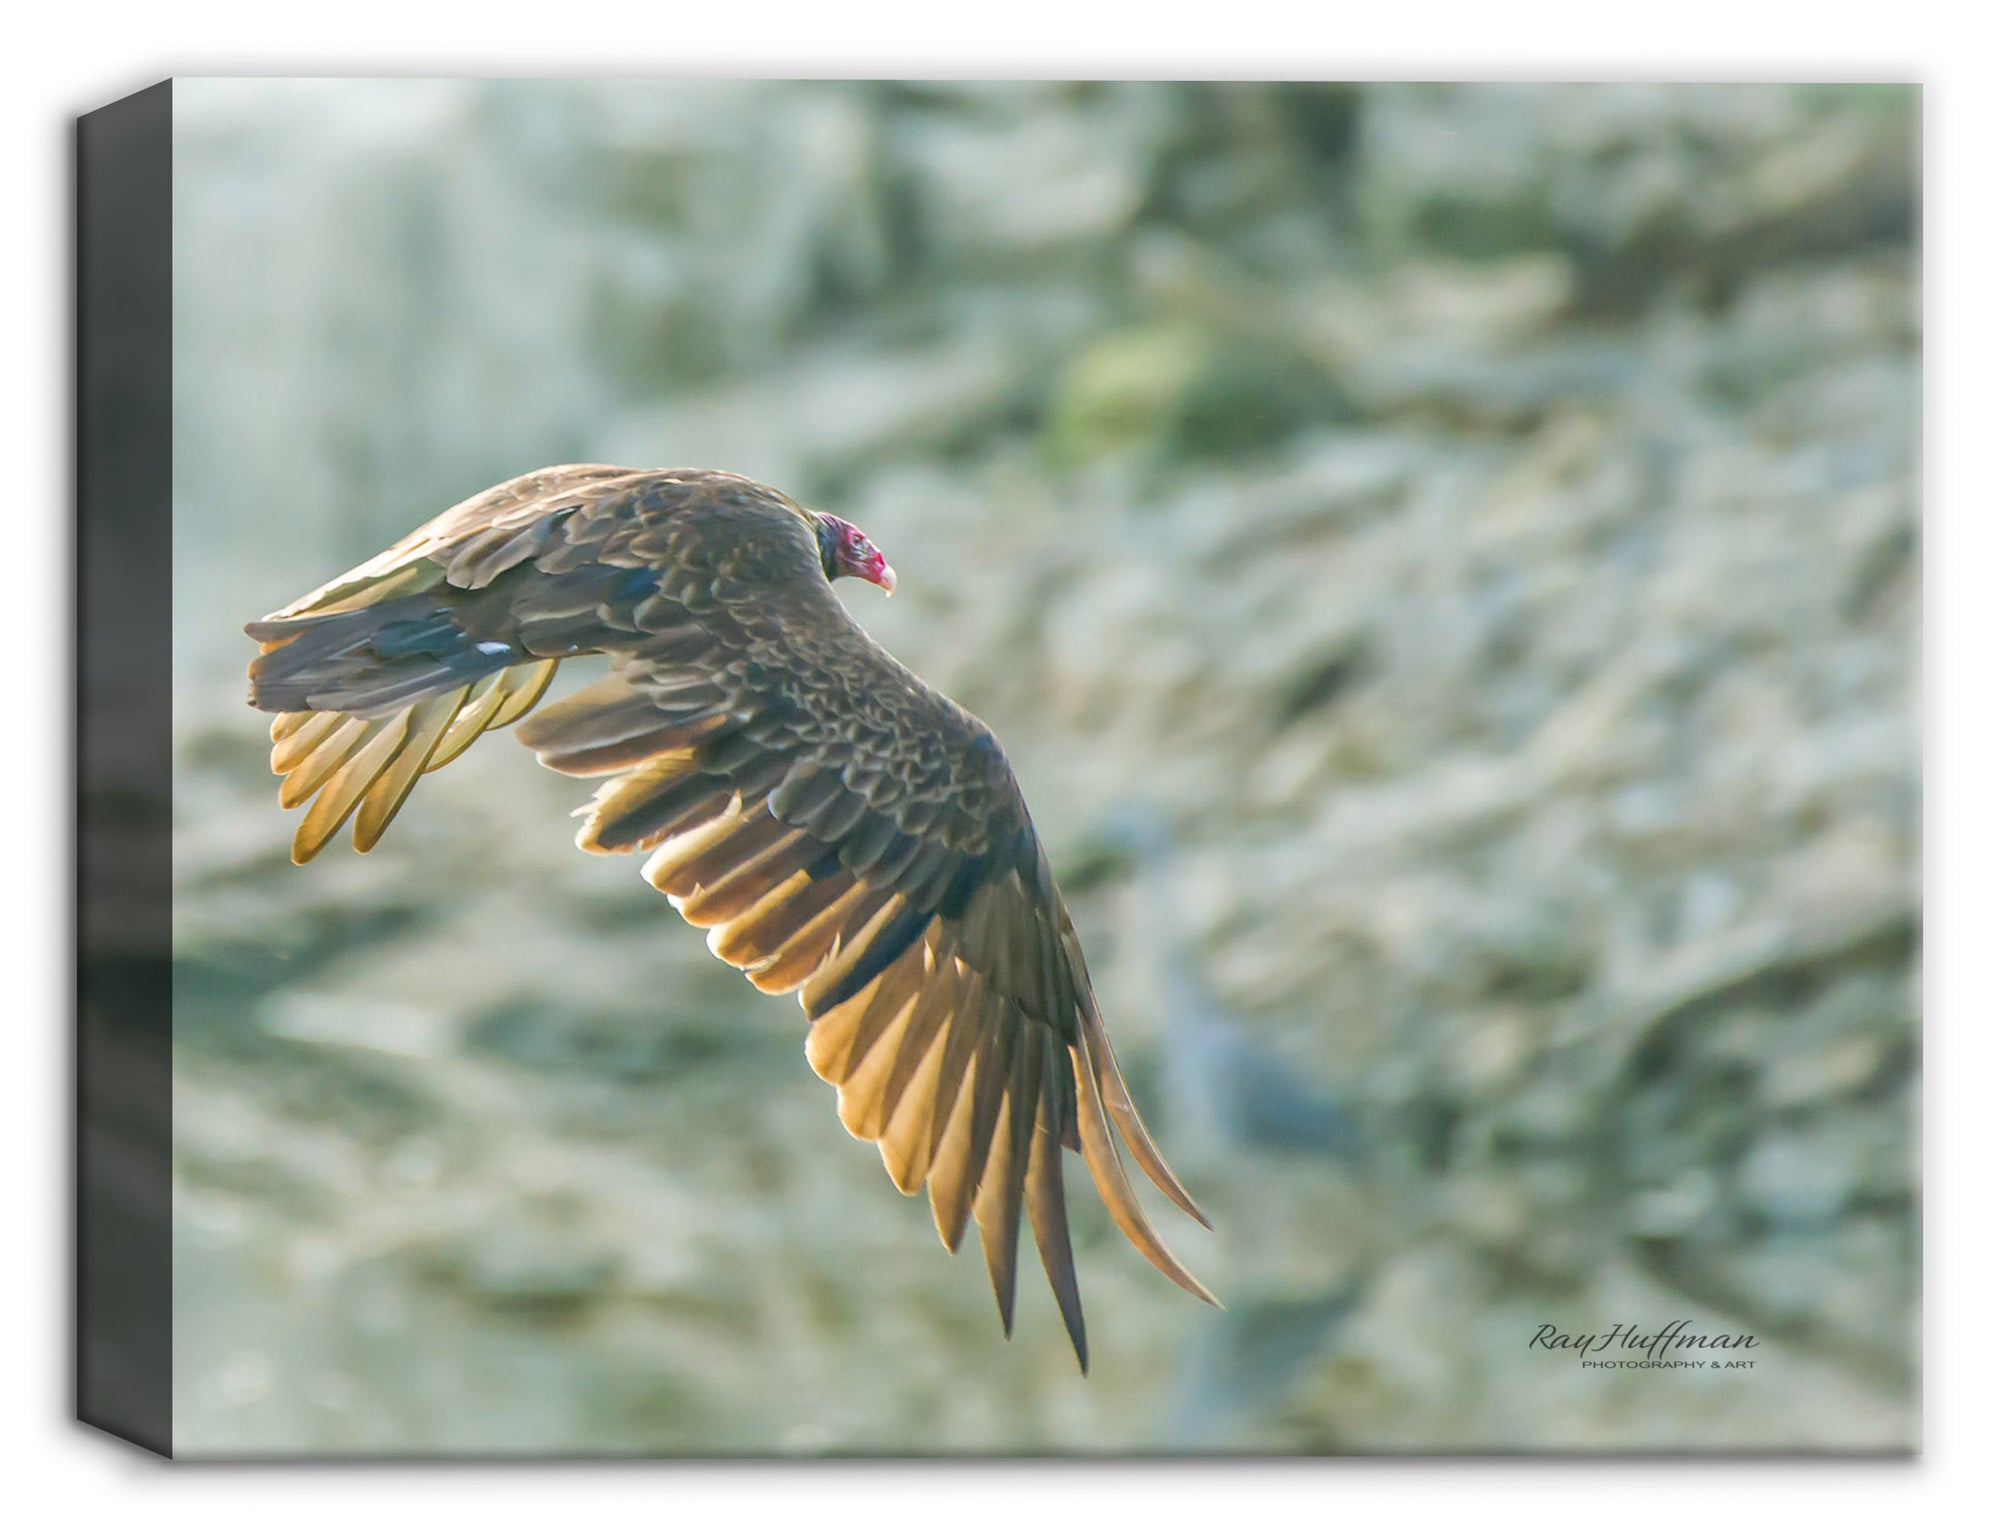 Turkey Vulture on Canvas Photograph